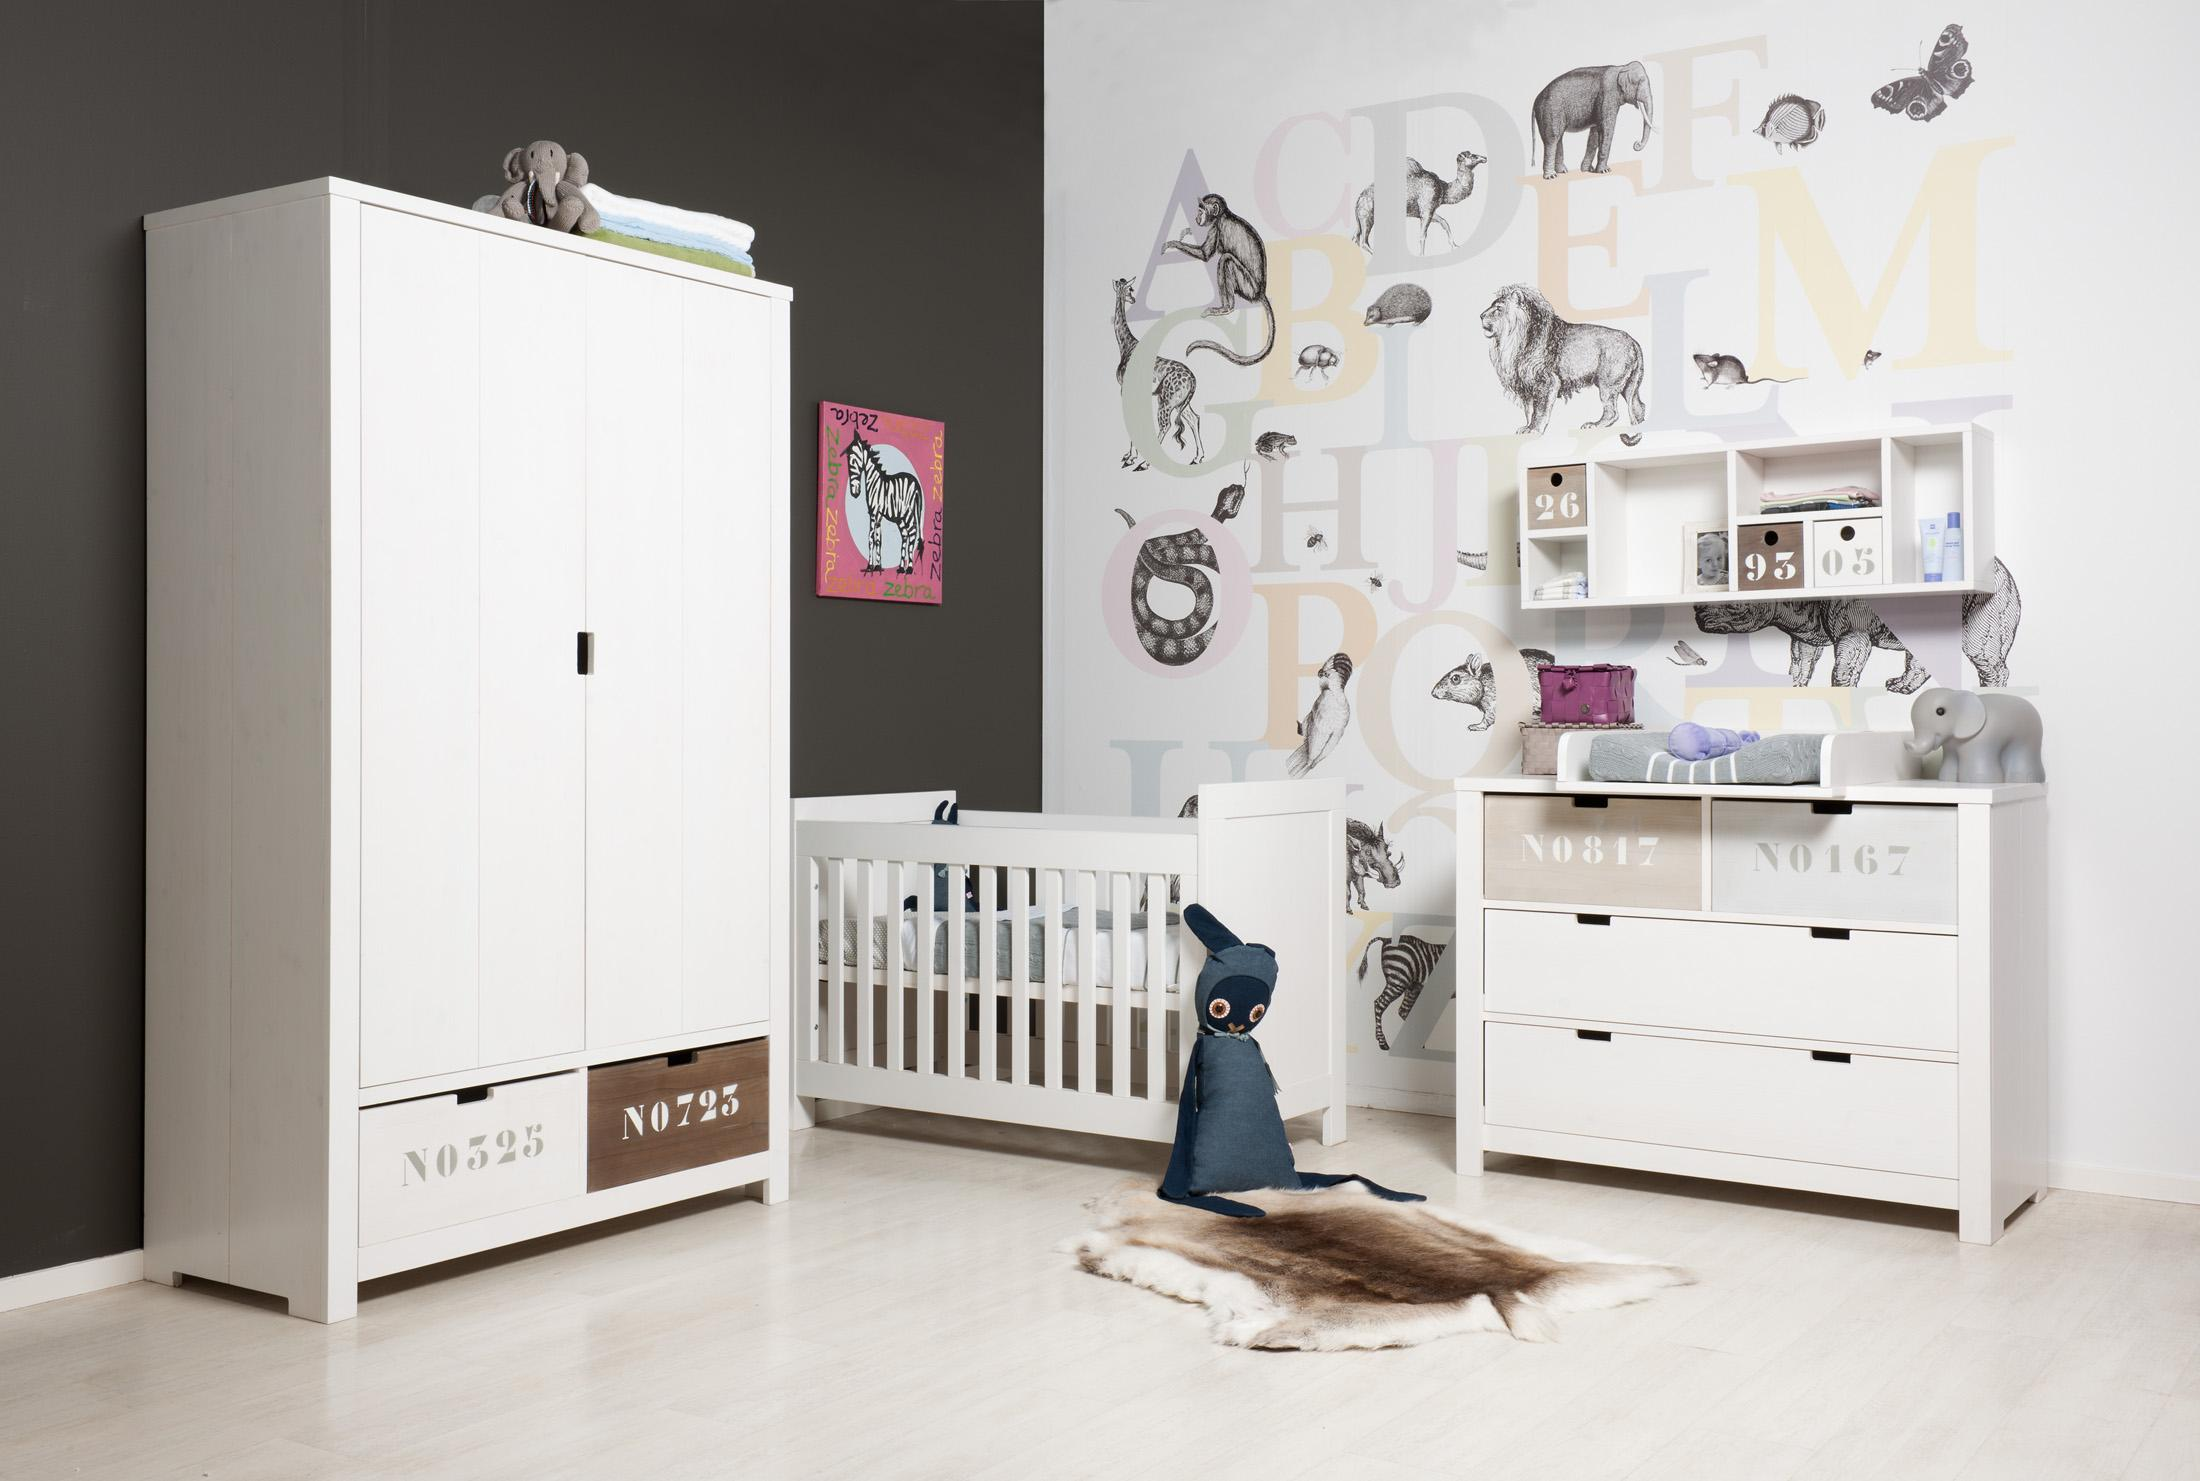 wickeltisch design wickeltisch babyzimmer kommode wei icy with wickeltisch design perfect. Black Bedroom Furniture Sets. Home Design Ideas